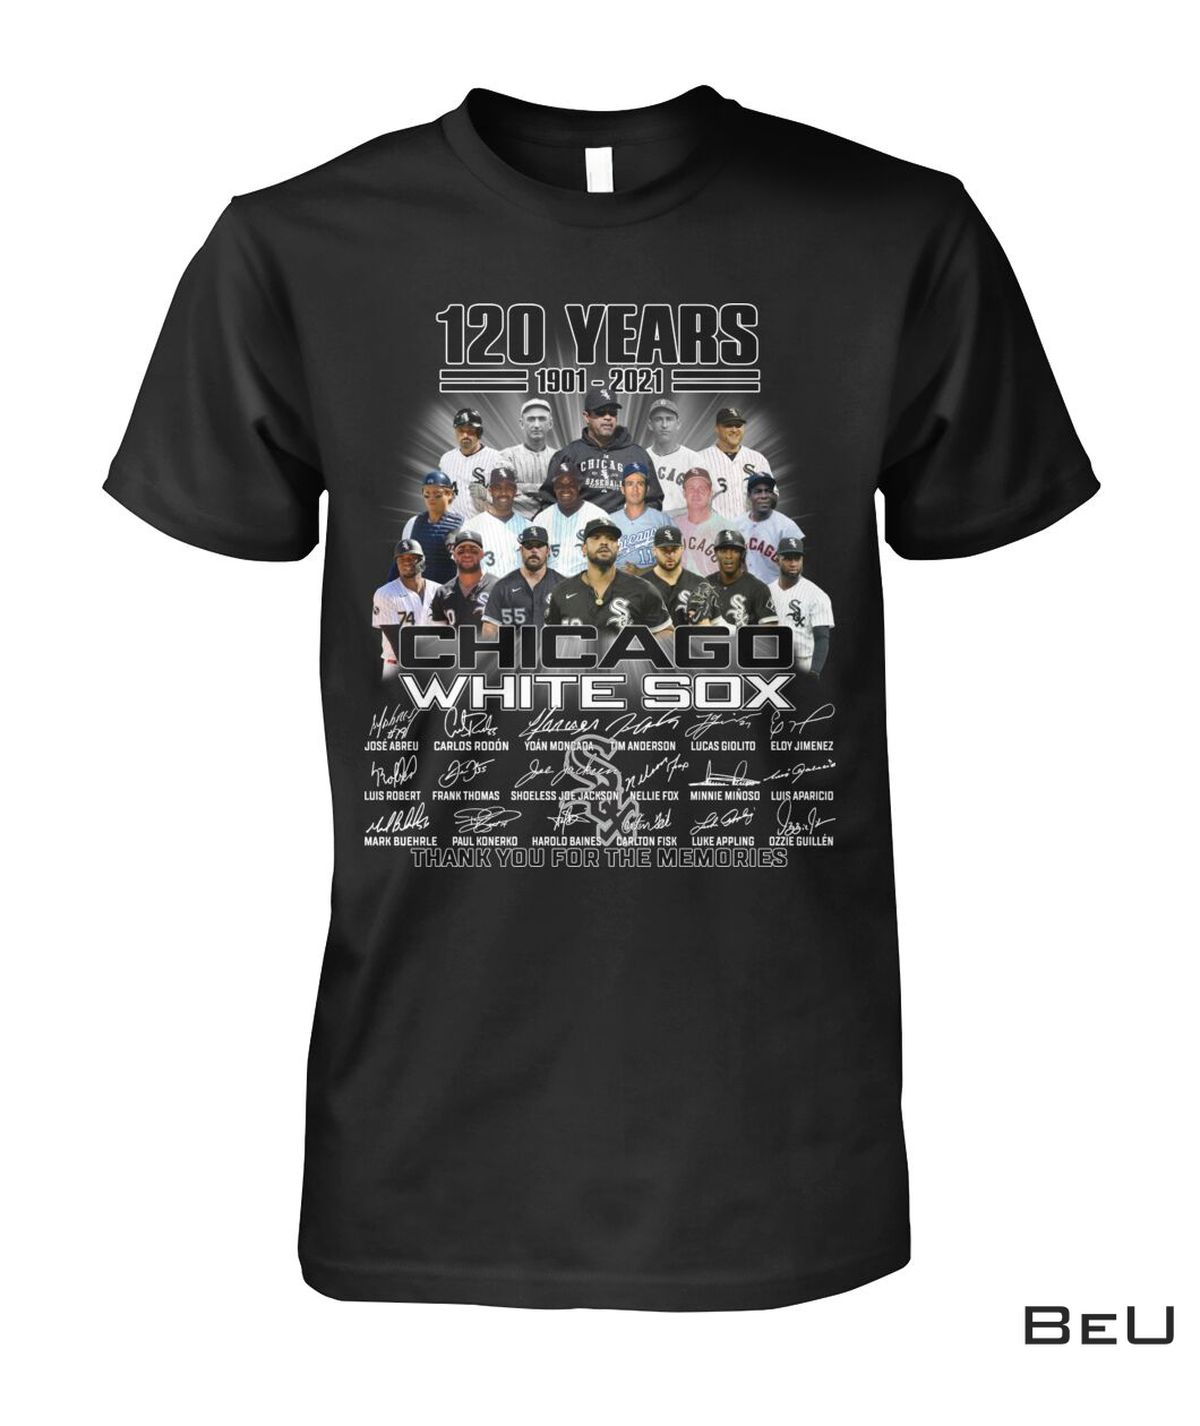 Chicago White Sox 120 Years Thank You For The Memories Shirt, hoodie, tank top